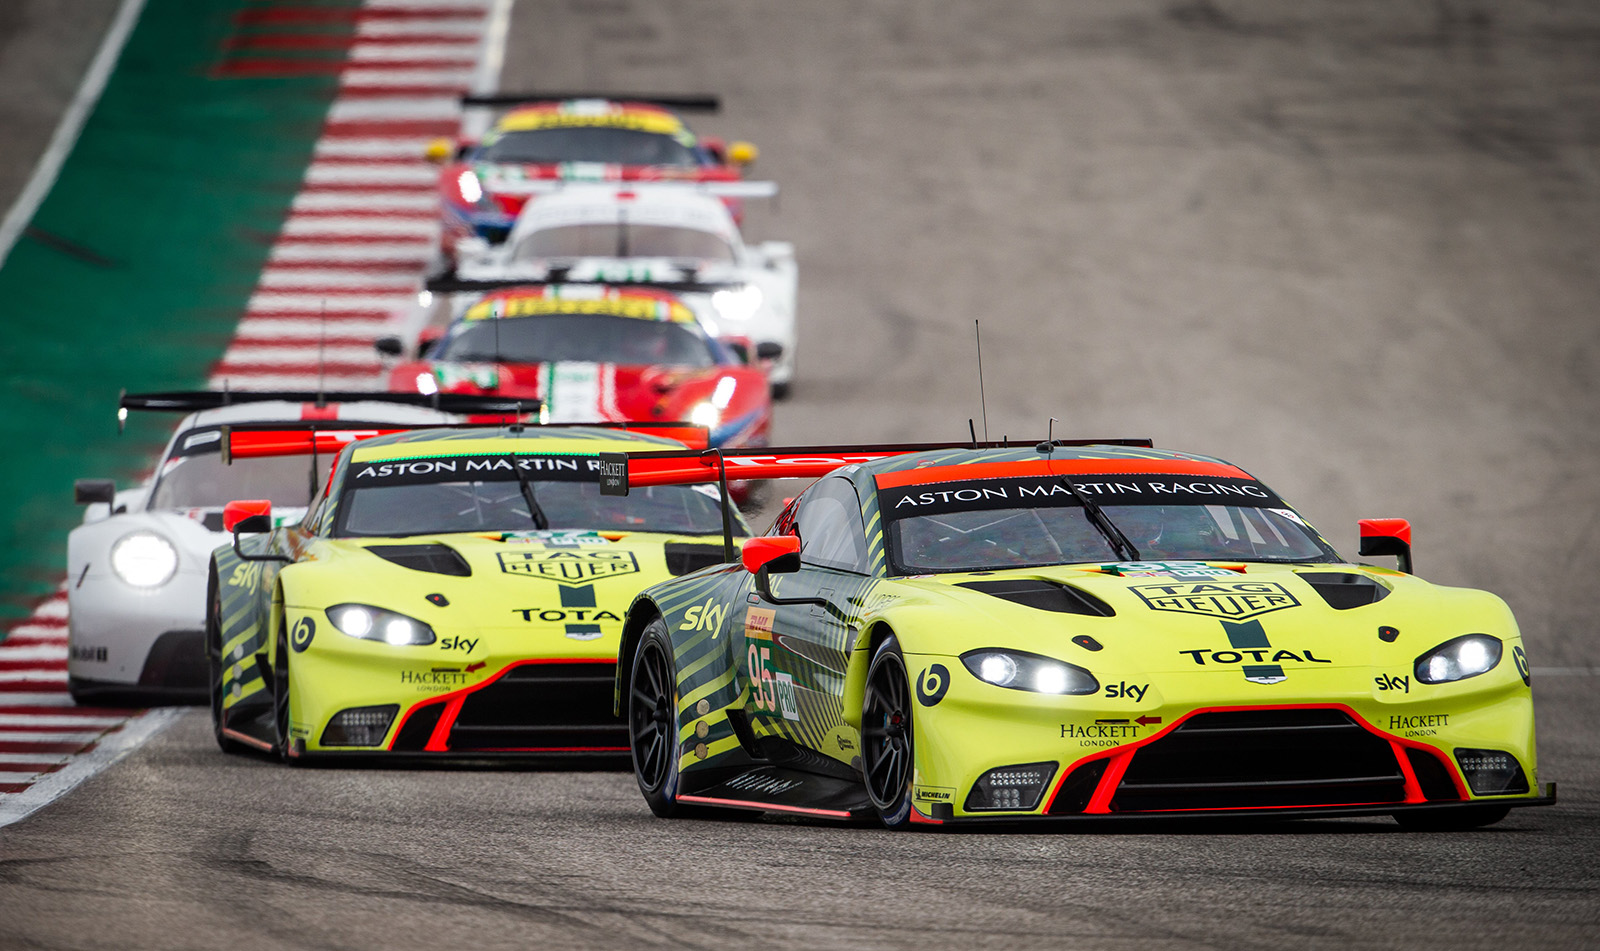 95 SORENSEN Marco (dnk), THIIM Nicki (dnk), Aston Martin Vantage AMR team Aston Martin racing, action during the Lone Star Le Mans 2020, 6 Hours of Circuit of The Americas, fifth round of the 2020 FIA World Endurance Championship season from February 21 to 23 at Austin, USA